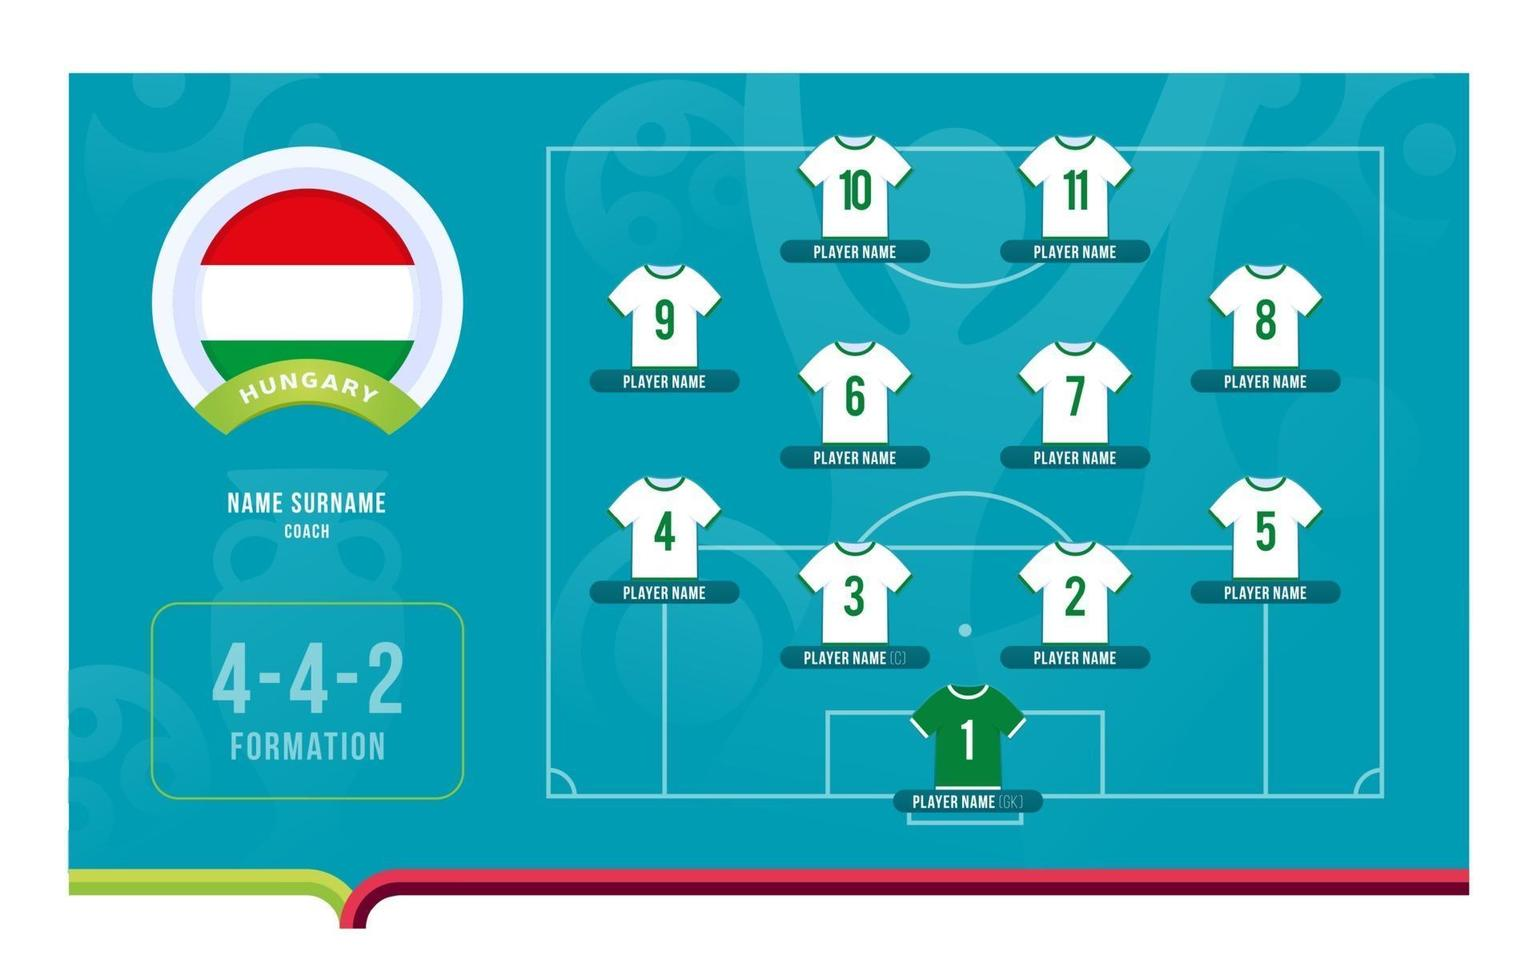 Hungary line-up Football tournament final stage vector illustration